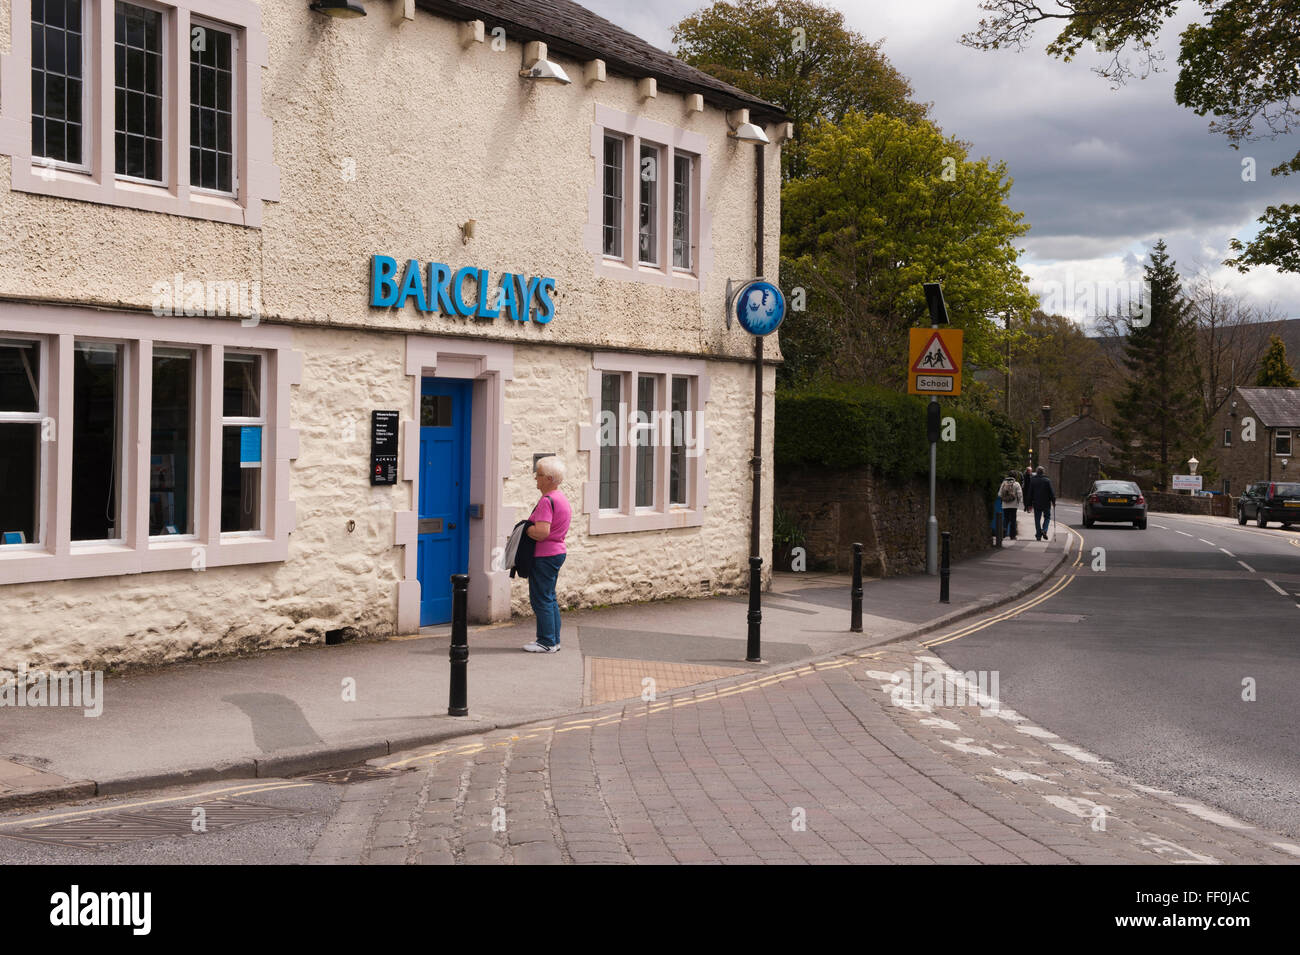 Barclays Bank, Grassington, North Yorkshire, GB, UK, is closed today - a lady studies a sign showing the limited - Stock Image